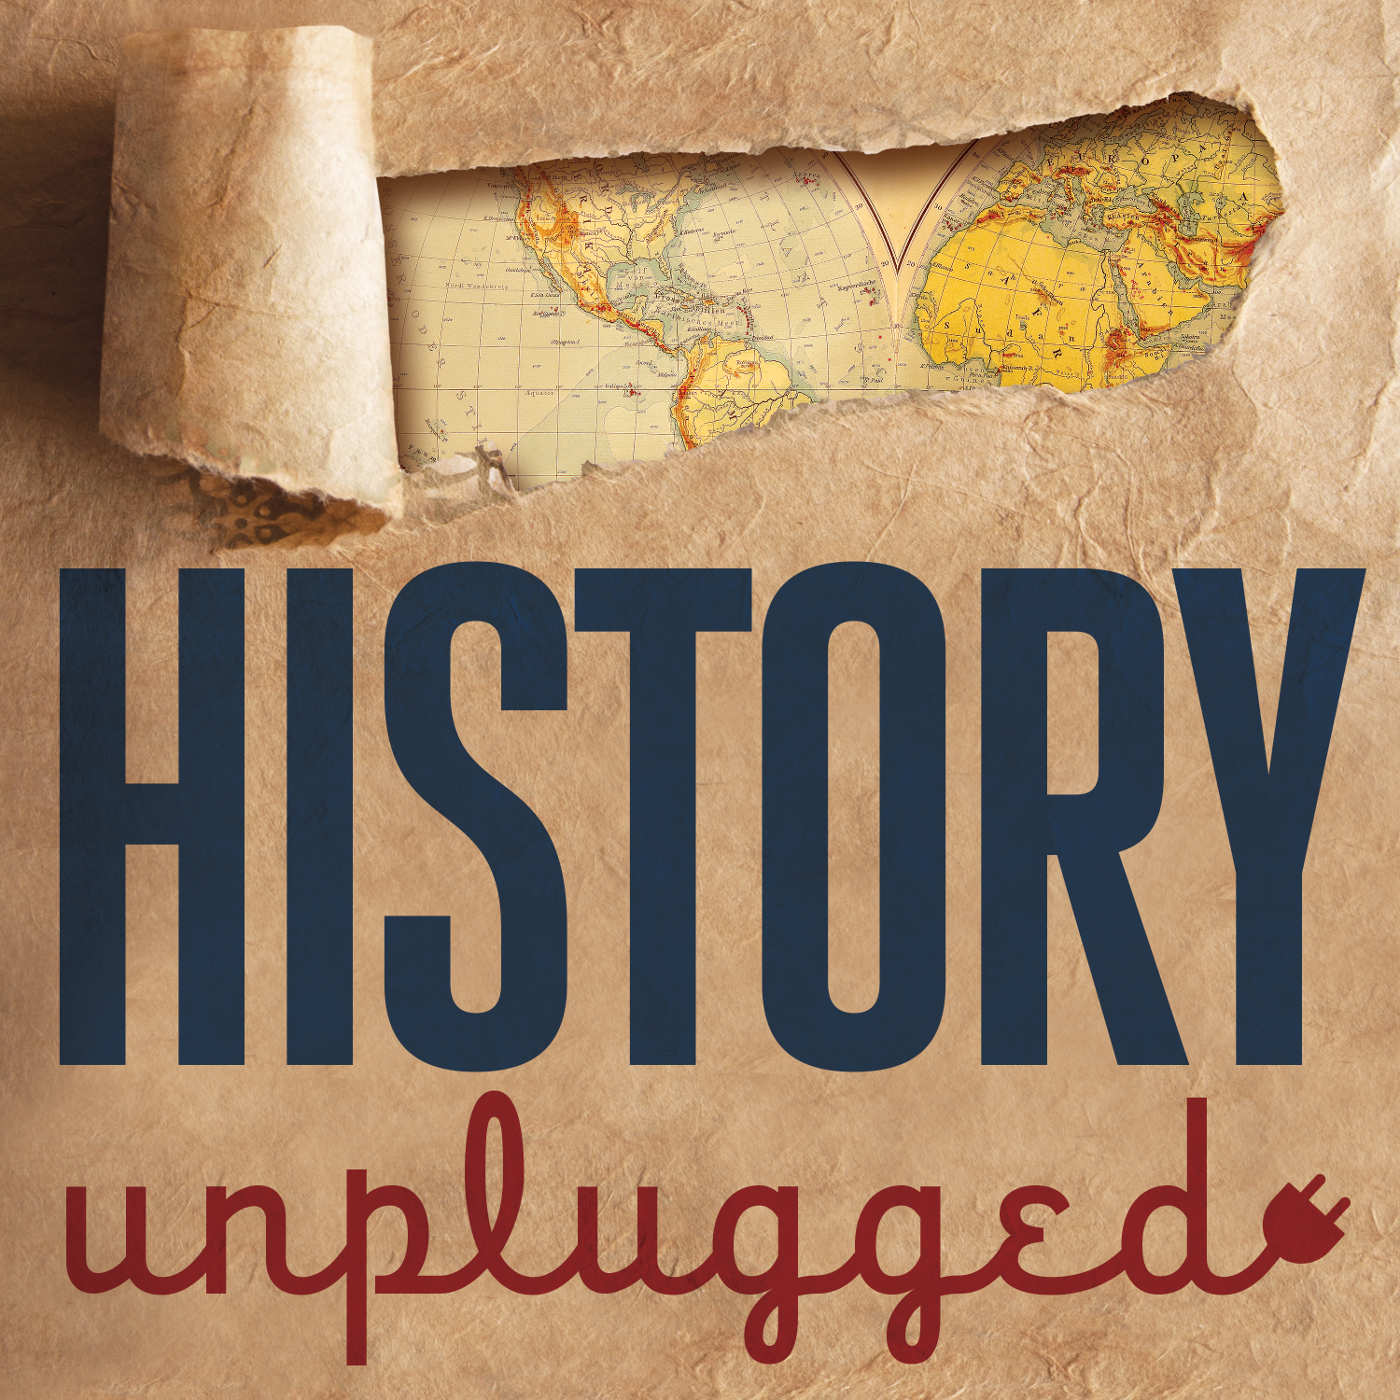 history of an email The history of email written by ian peter download audio version here email is much older than arpanet or the internet it was never invented it.